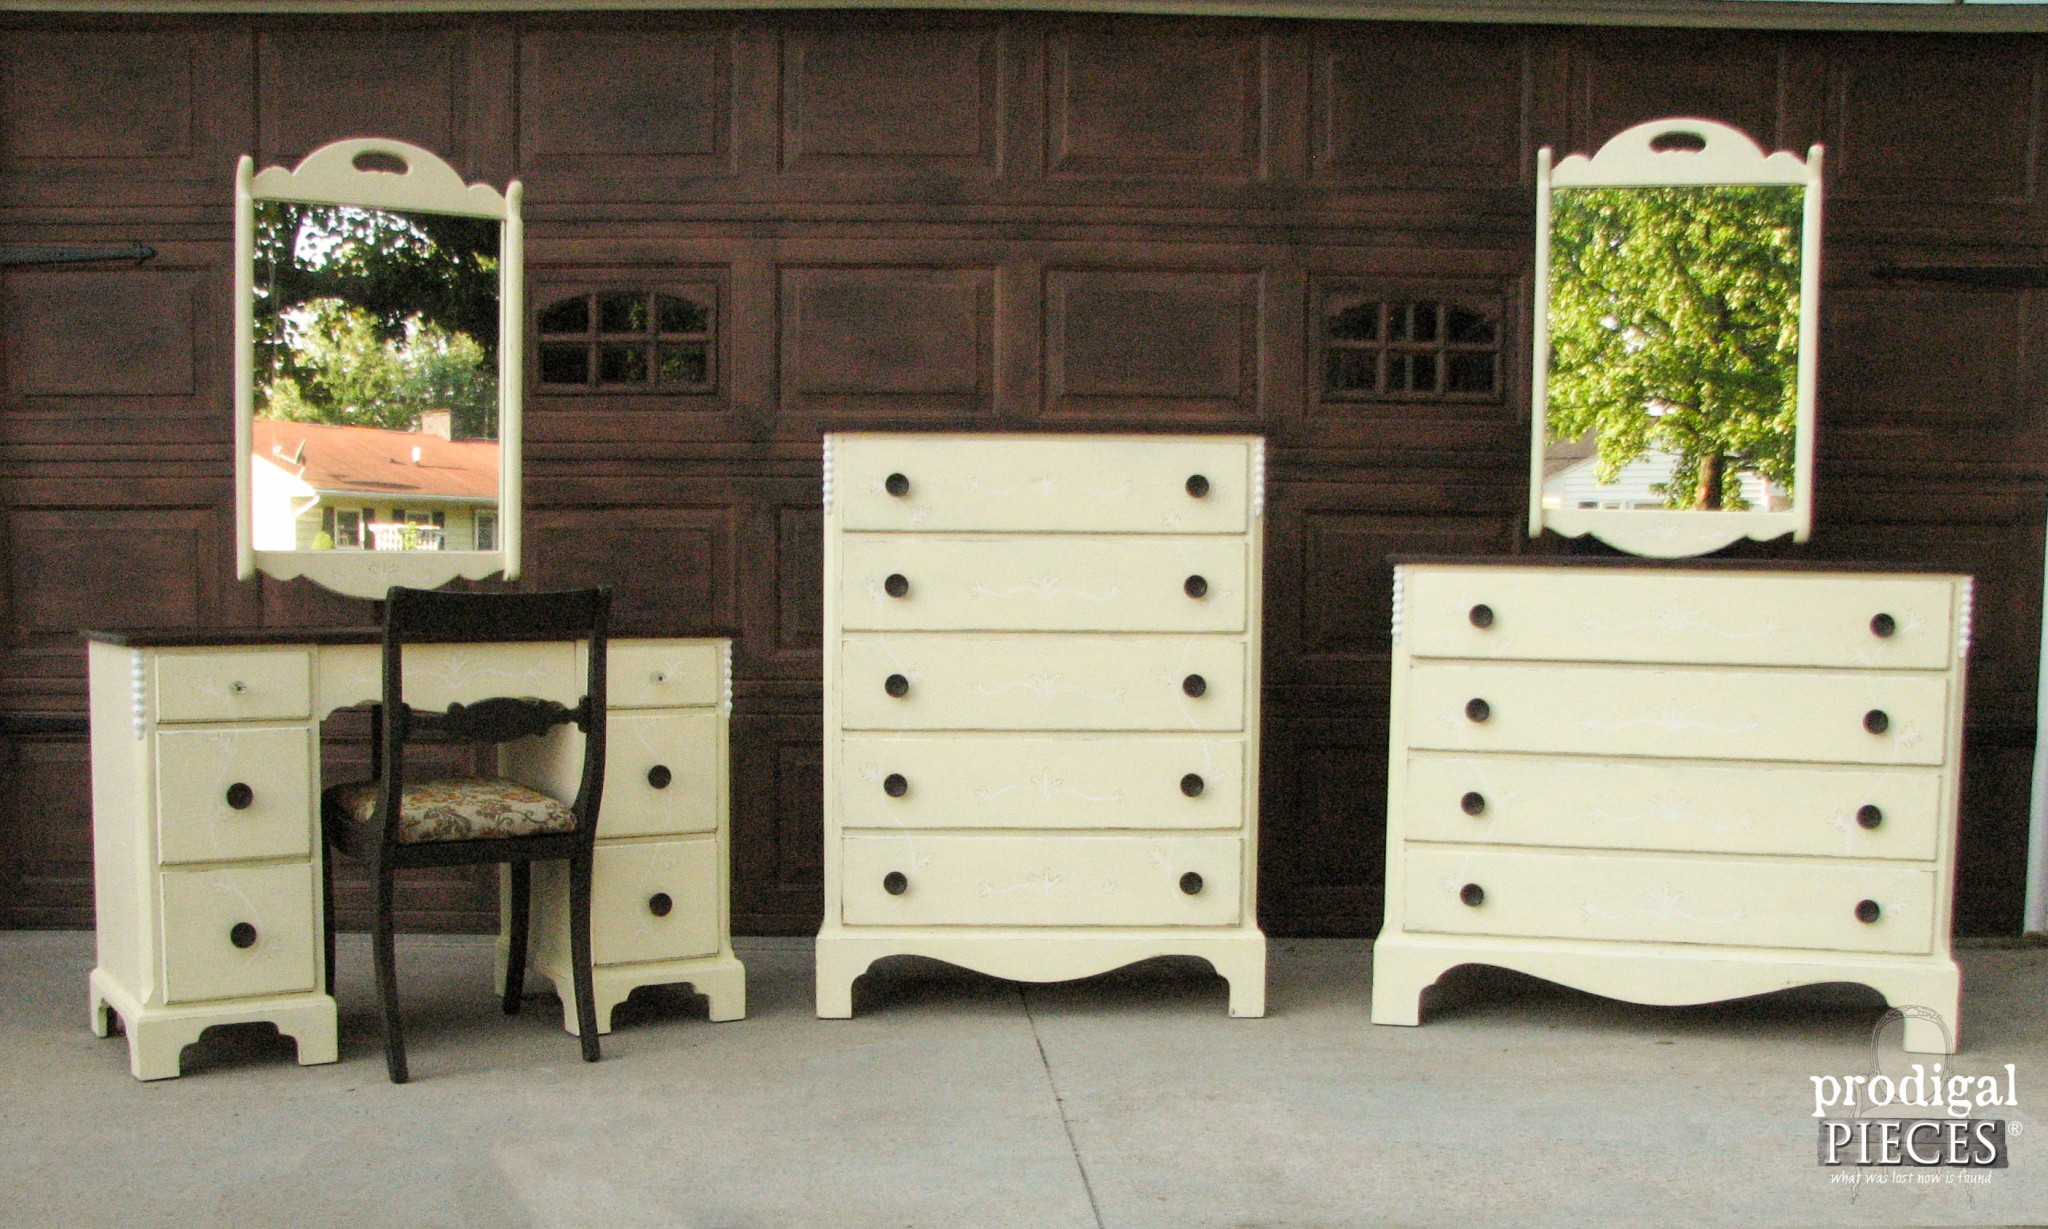 Vintage Bedroom Set with Primitive Makeover by Prodigal Pieces | www.prodigalpieces.com